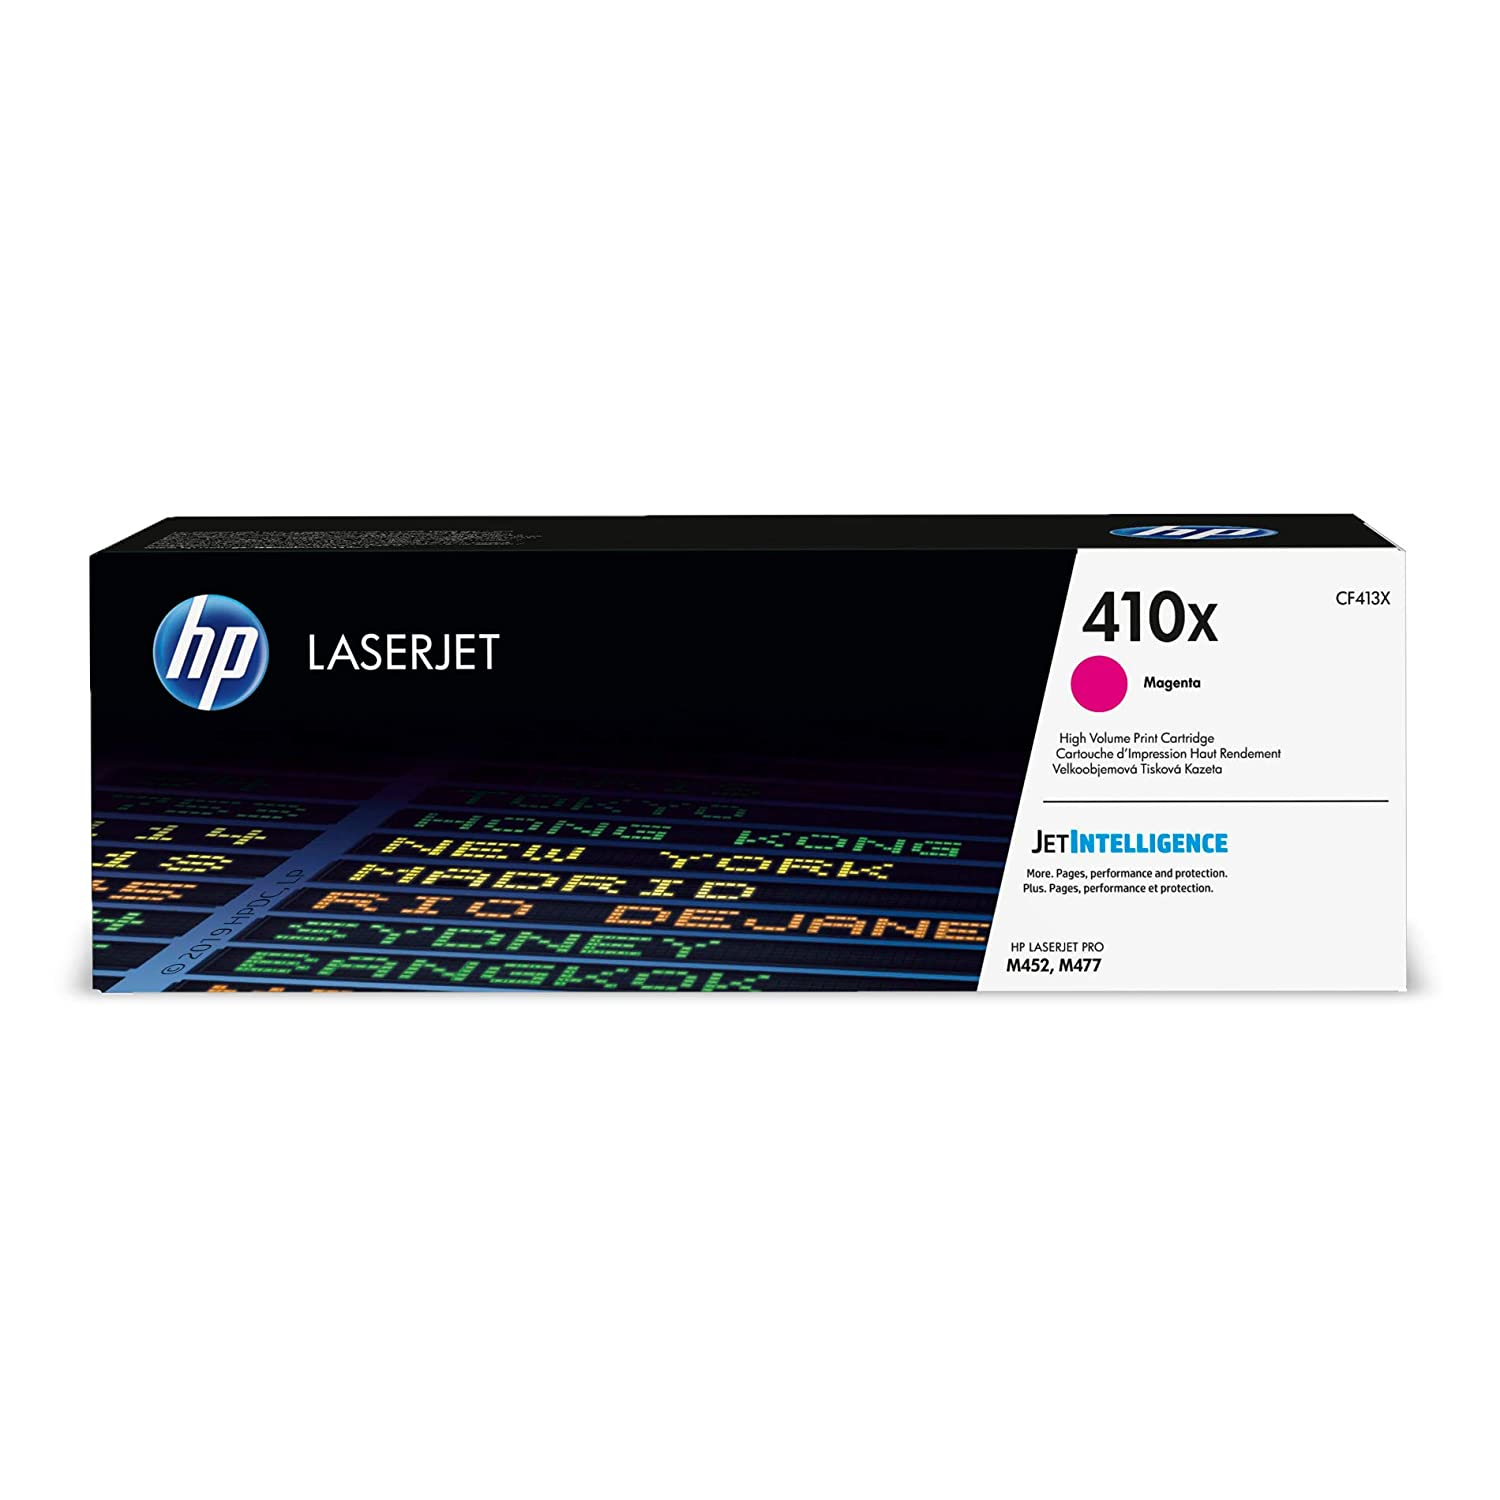 HP 410X (CF413X) Toner Cartridge, Magenta High Yield for HP Color LaserJet Pro M452dn M452dw M452nw MFP M377dw MFP M477fdn MFP M477fdw MFP M477fnw